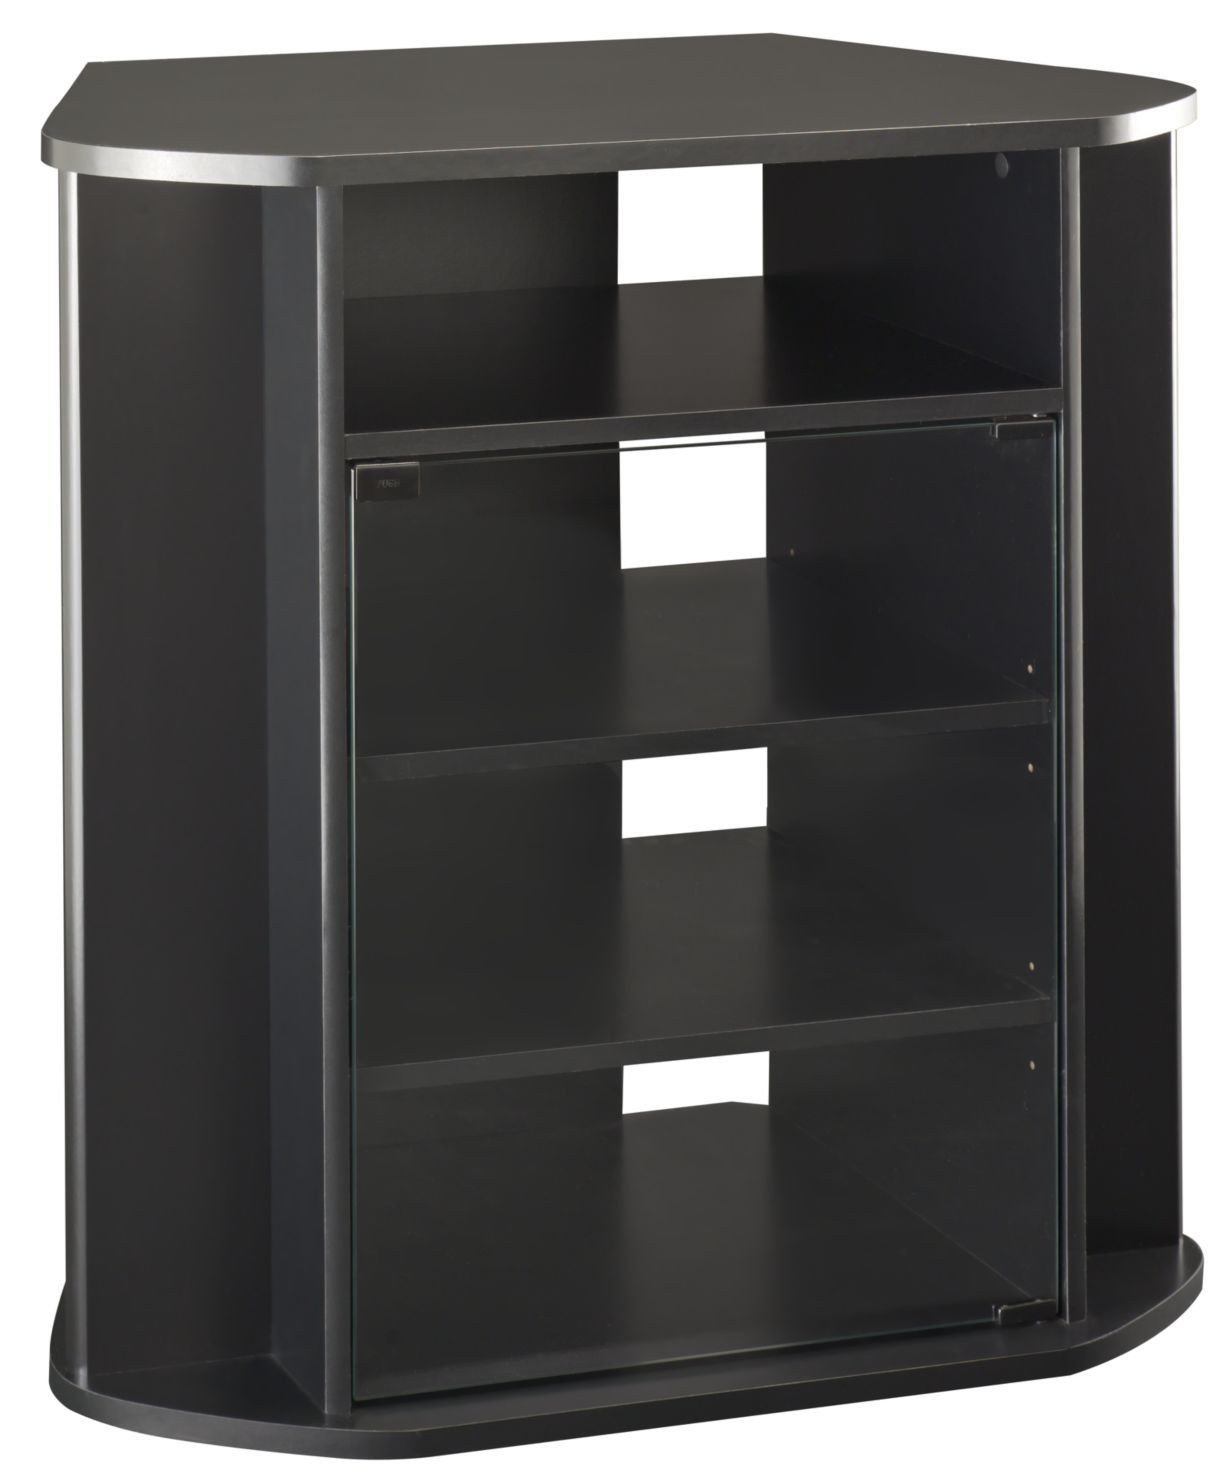 visions black tall corner tv stand from bush my37927 03